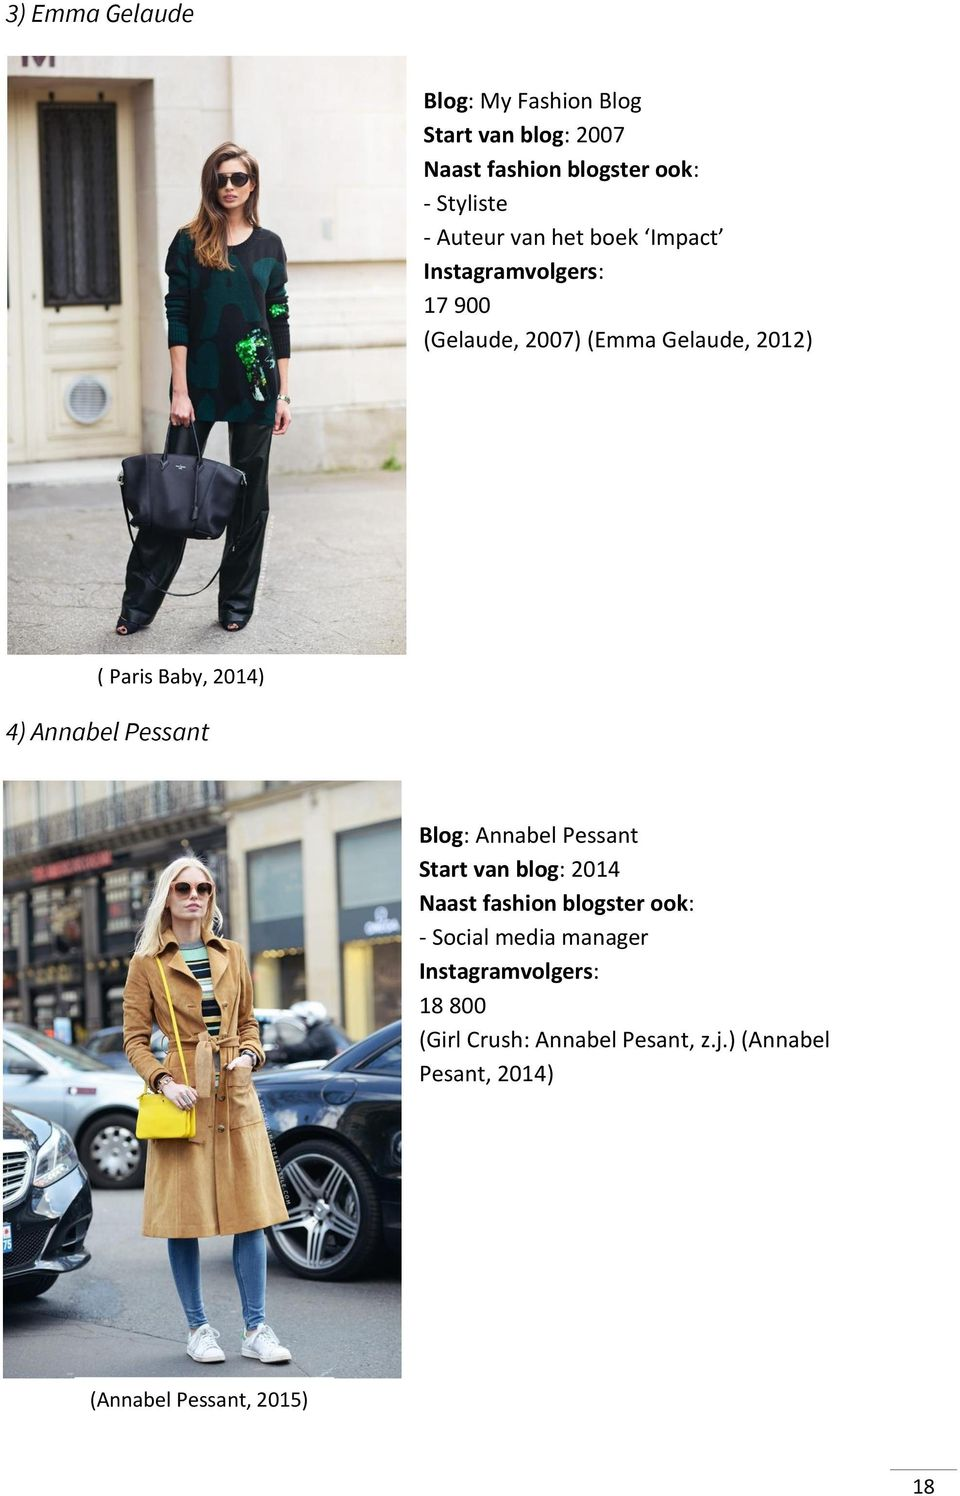 Annabel Pessant Blog: Annabel Pessant Start van blog: 2014 Naast fashion blogster ook: - Social media